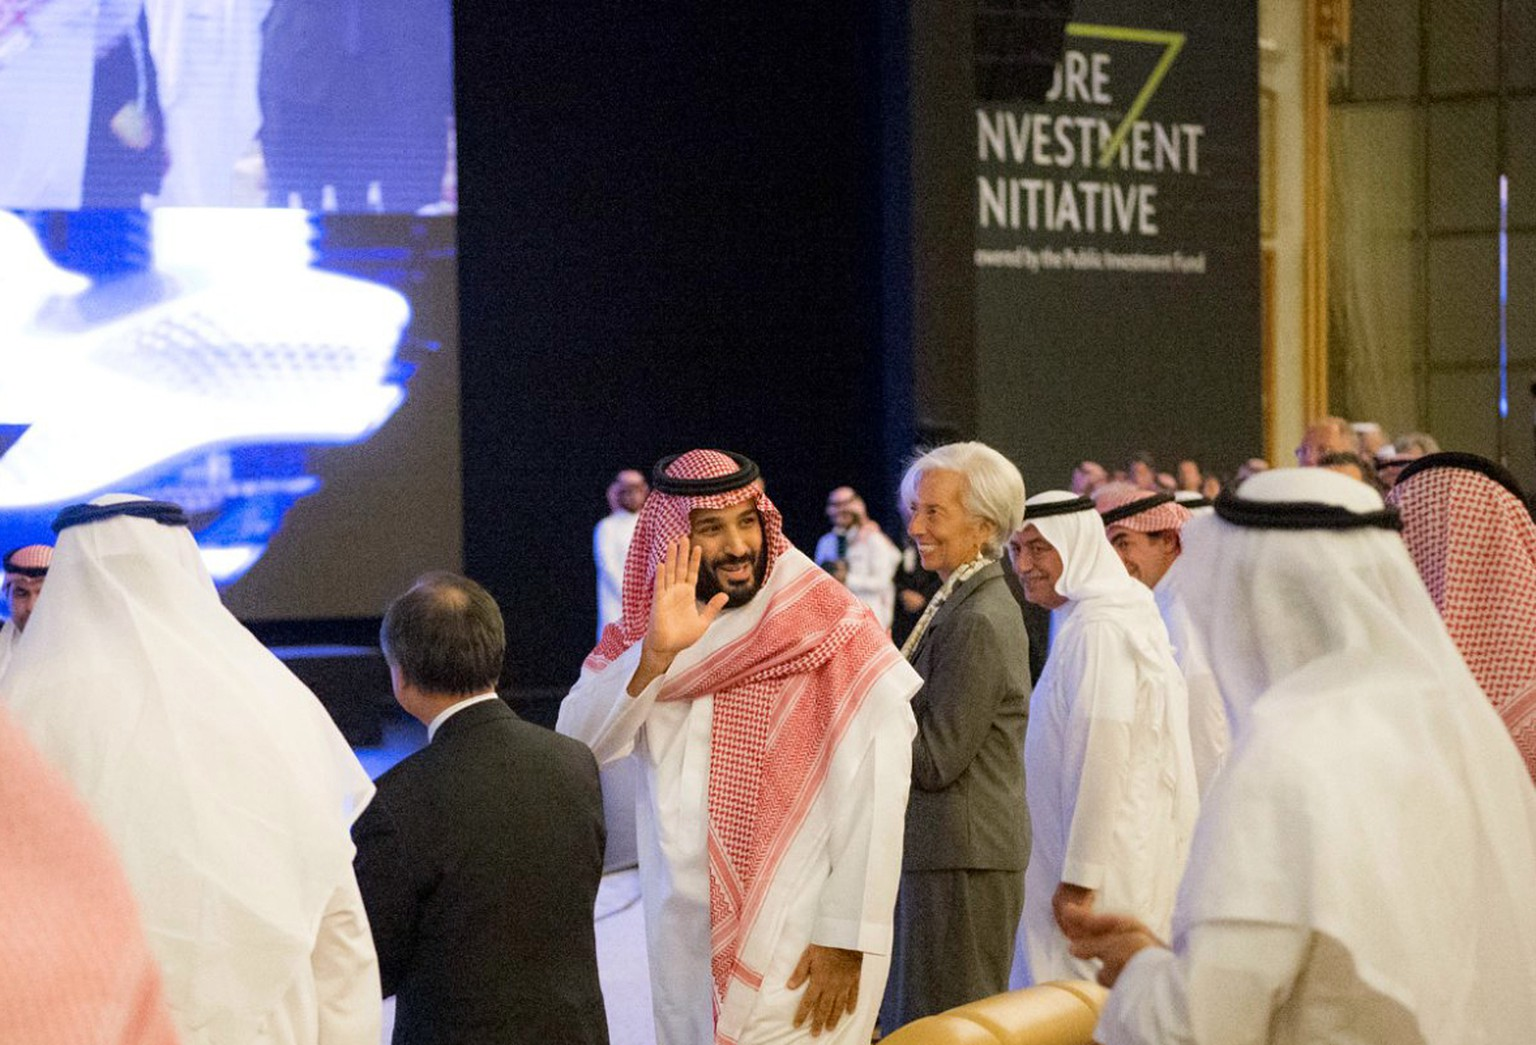 "In this photo released by Saudi Press Agency, SPA, Saudi Crown Prince Mohammed bin Salman, center left, and Managing Director of International Monetary Fund Christine Lagarde, center right, attend the opening ceremony of Future Investment Initiative Conference in Riyadh, Saudi Arabia, Tuesday, Oct. 24, 2017. Saudi Arabia's powerful crown prince on Tuesday announced plans to build a futuristic city run entirely on alternative sources of energy and said the ultraconservative kingdom must return to ""moderate Islam."